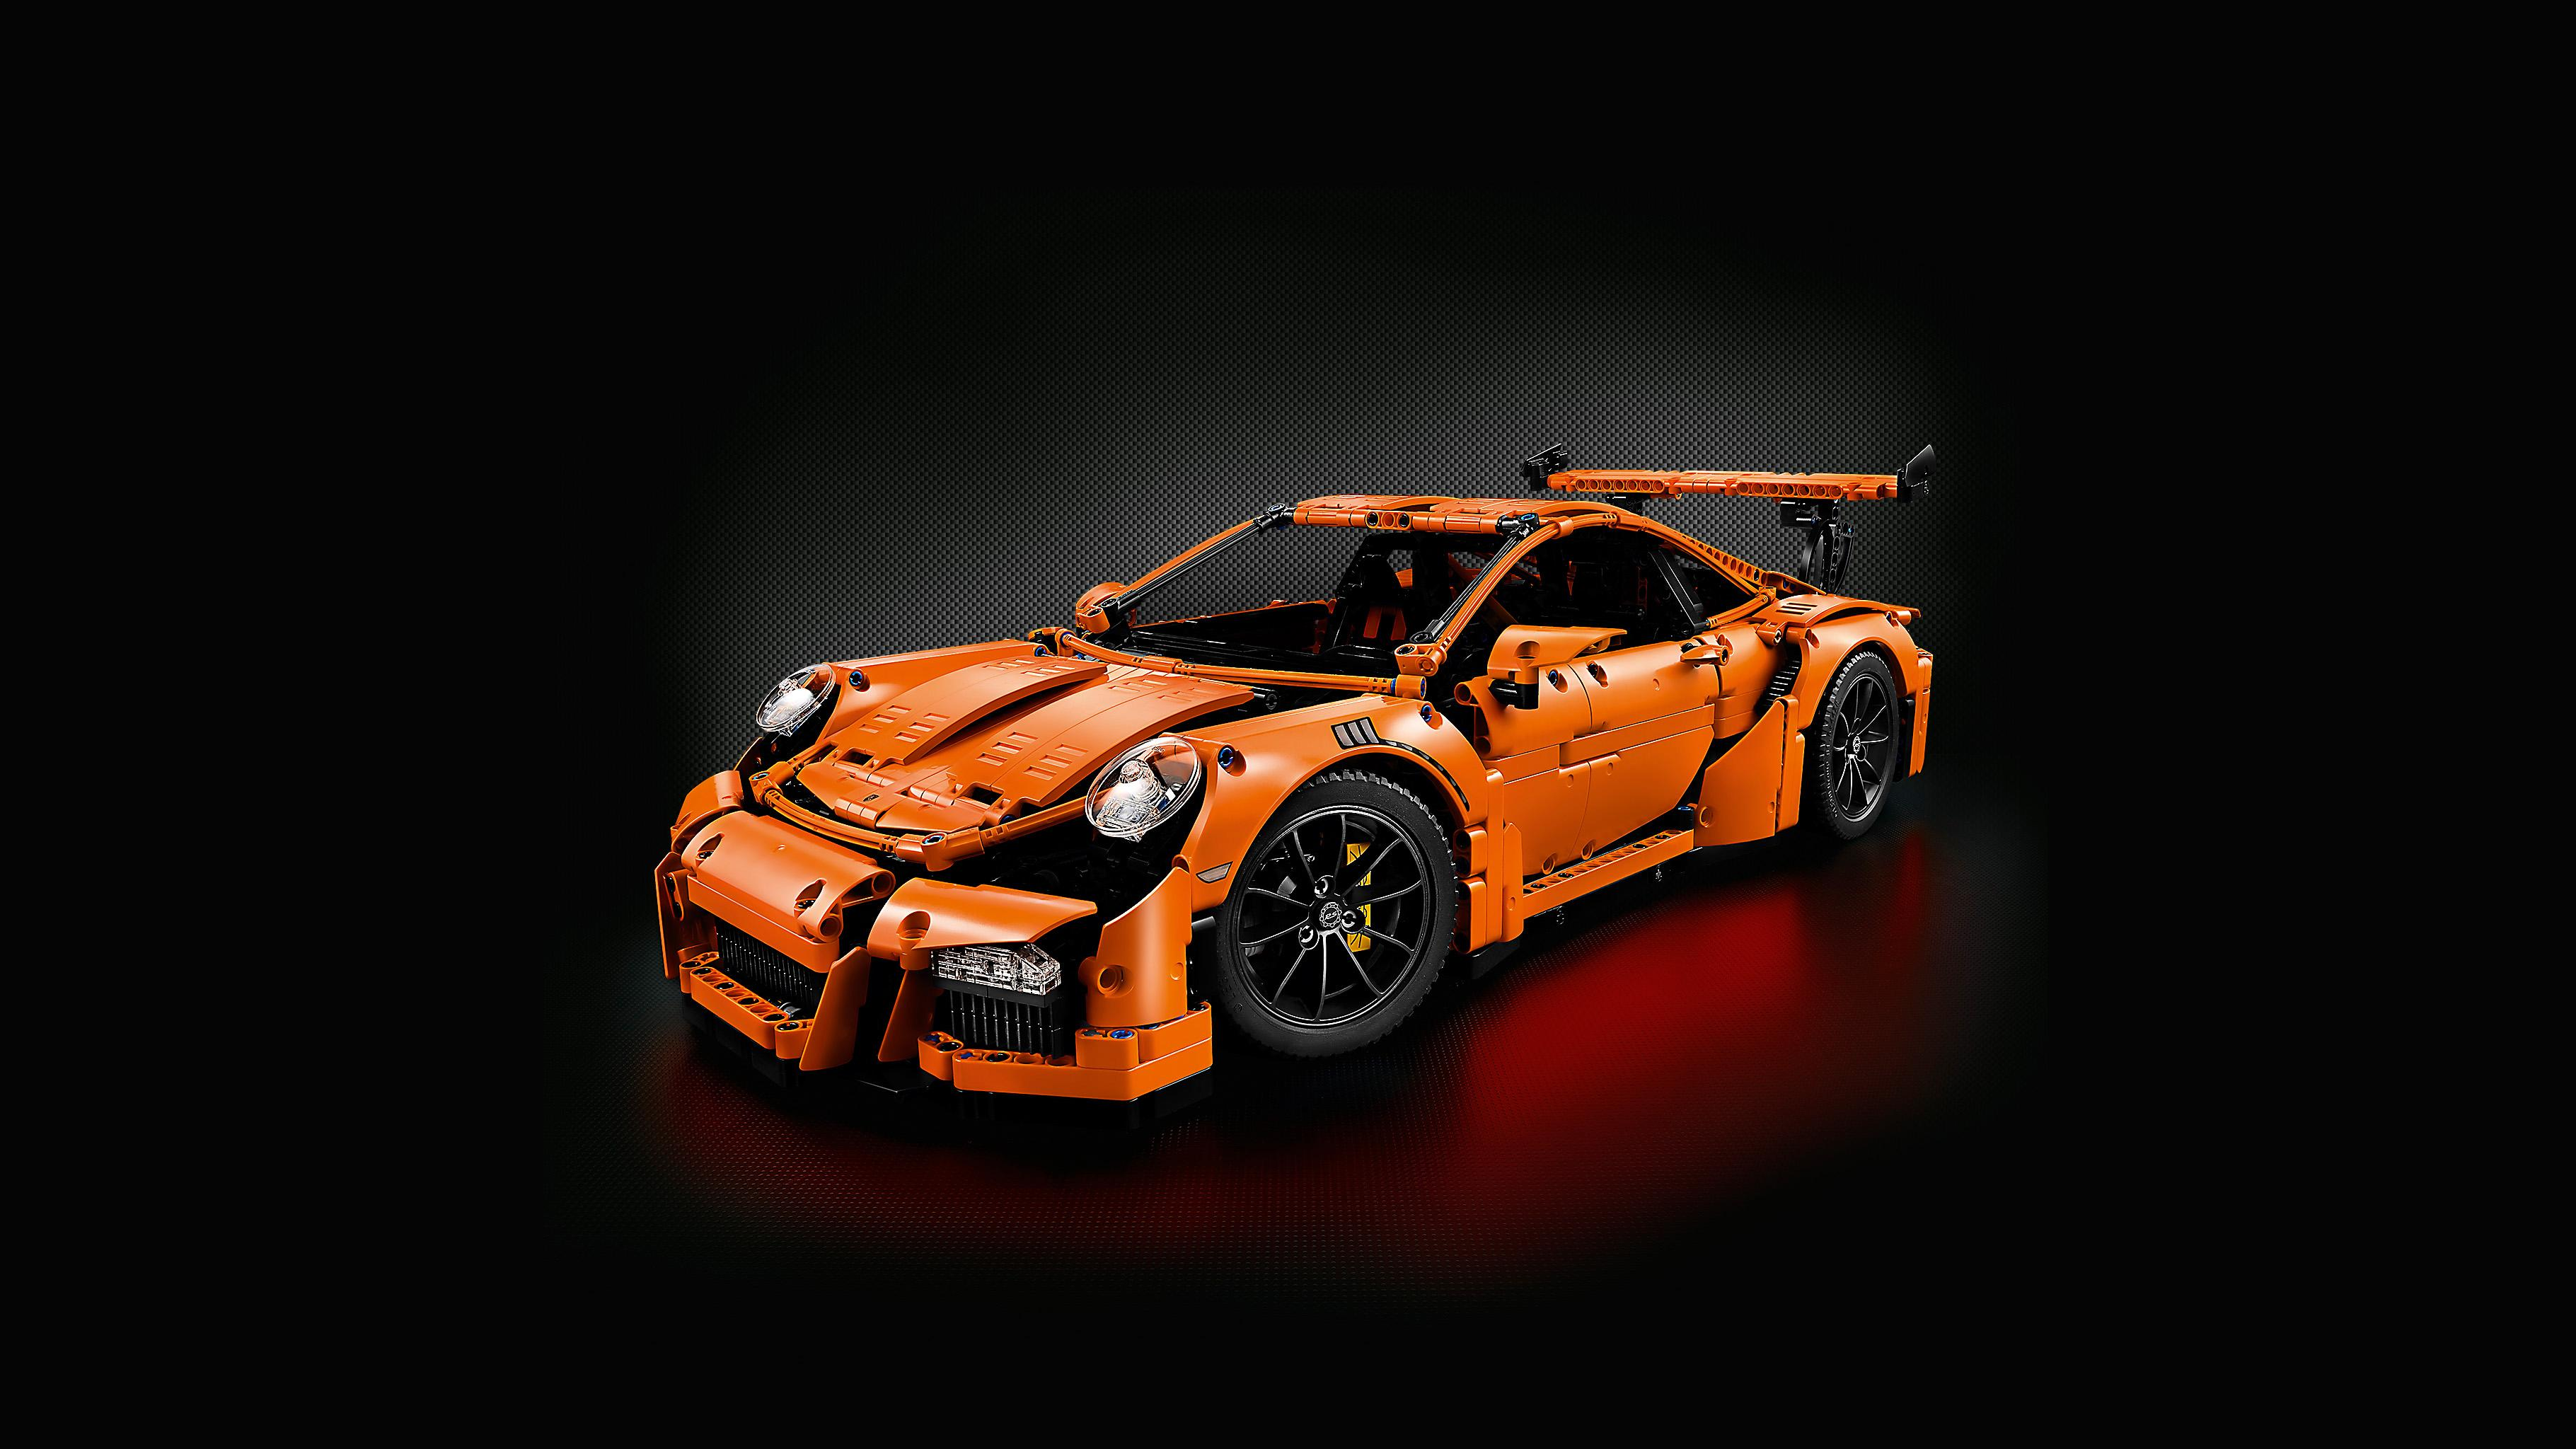 lego technic porsche 911 gt3 rs 42056 model 6 x 22 x 9 inch toys games. Black Bedroom Furniture Sets. Home Design Ideas